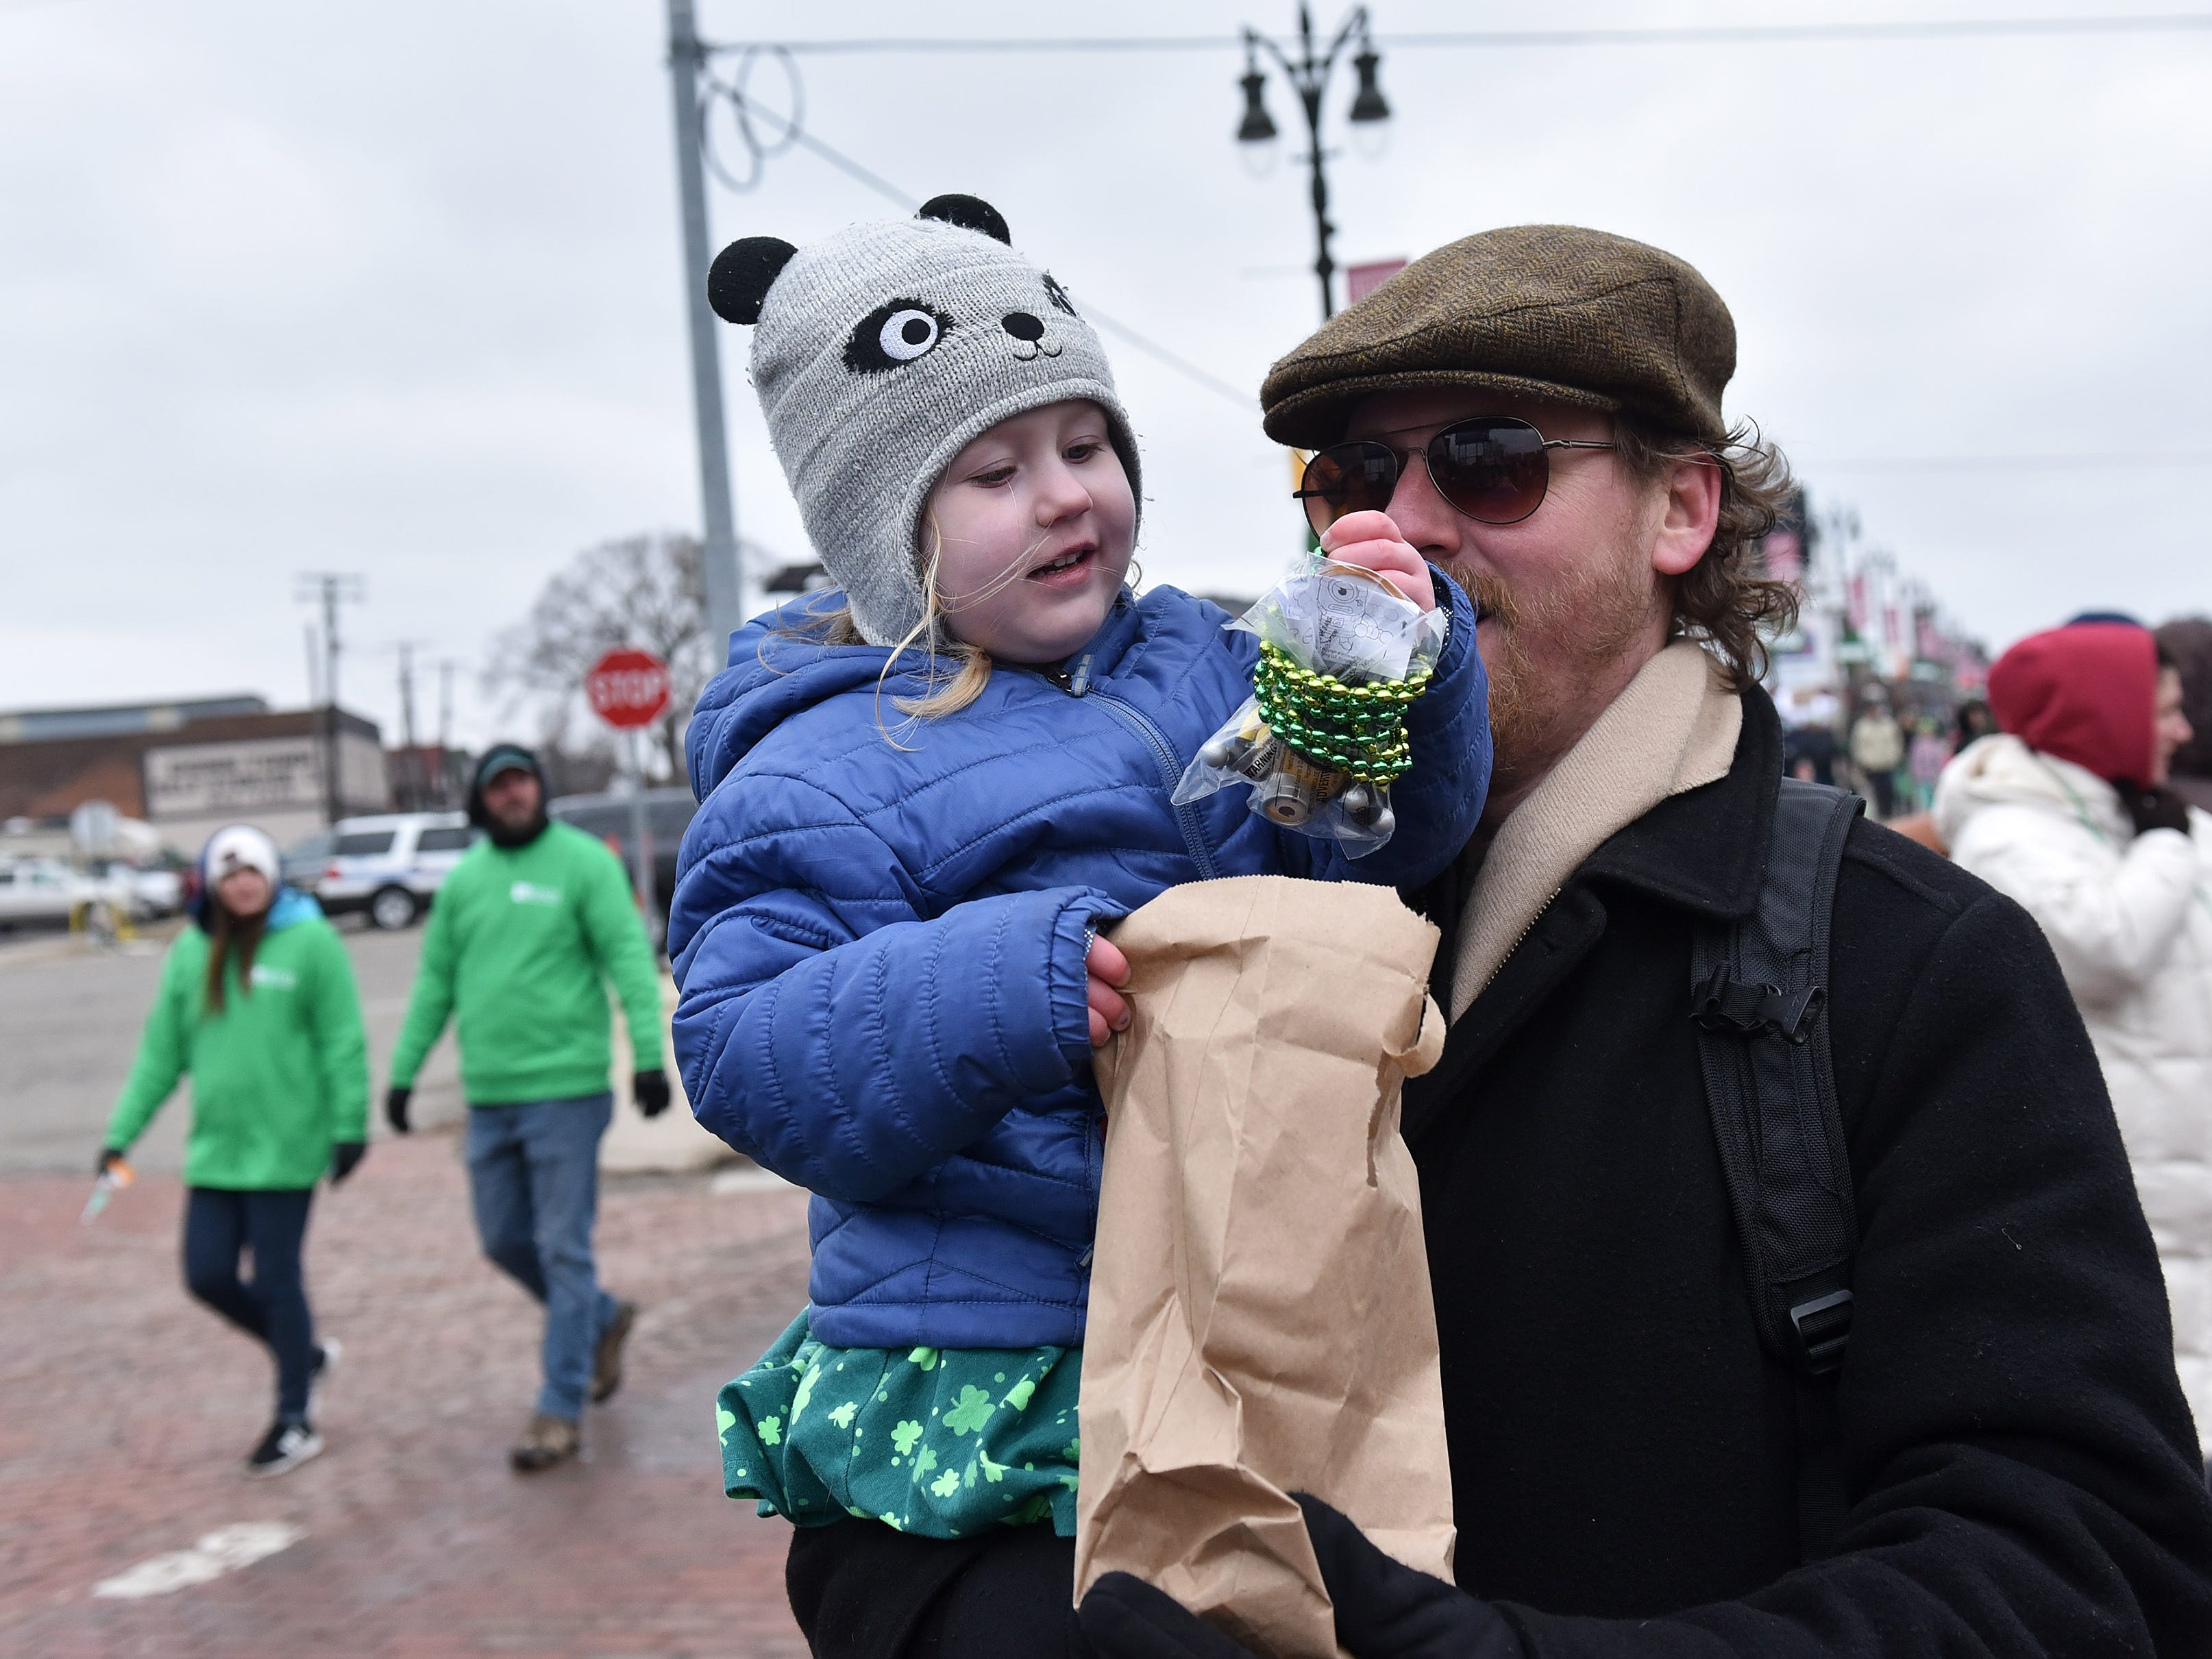 Thea Maher, 3, pulls beads and toys out of the bag with her dad, Eric Maher of West Bloomfield. The goodies were handed out by Michael and Maureen Hogan from the Gaelic League at the parade.